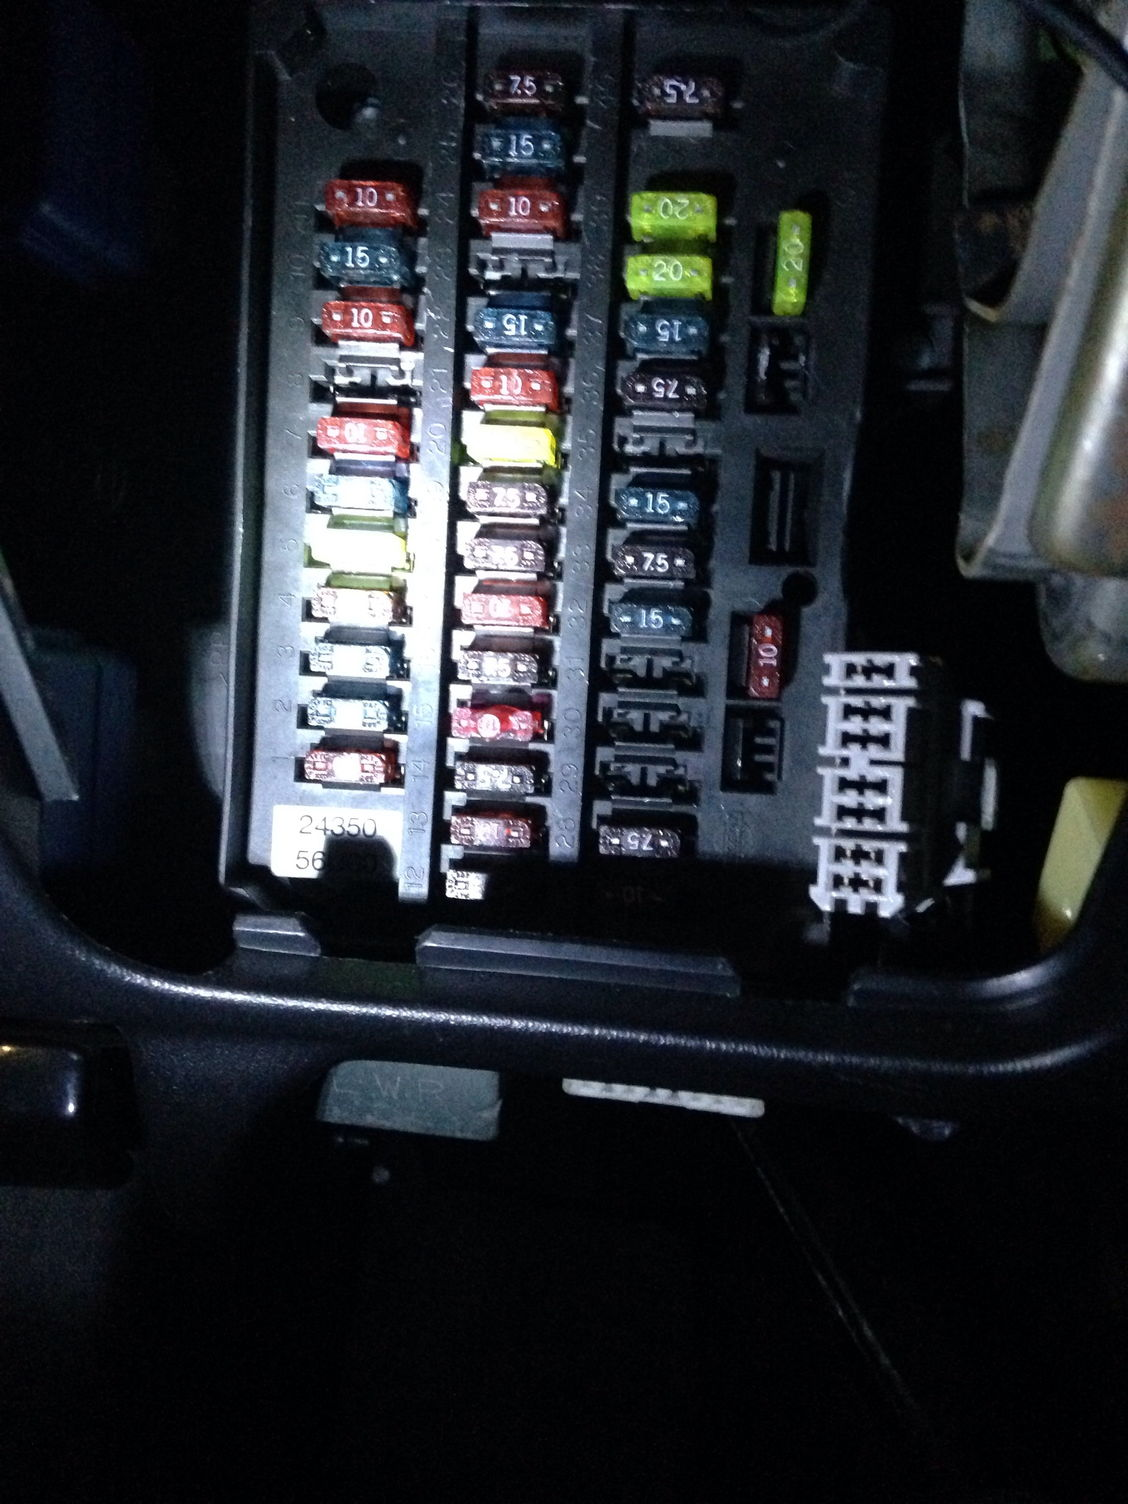 how to read fuse diagram? getting frustrated now maxima forums how to read fuse box in car i look at the interior fuse box and the fuses and diagram don't match up at all how the hell do you read this?